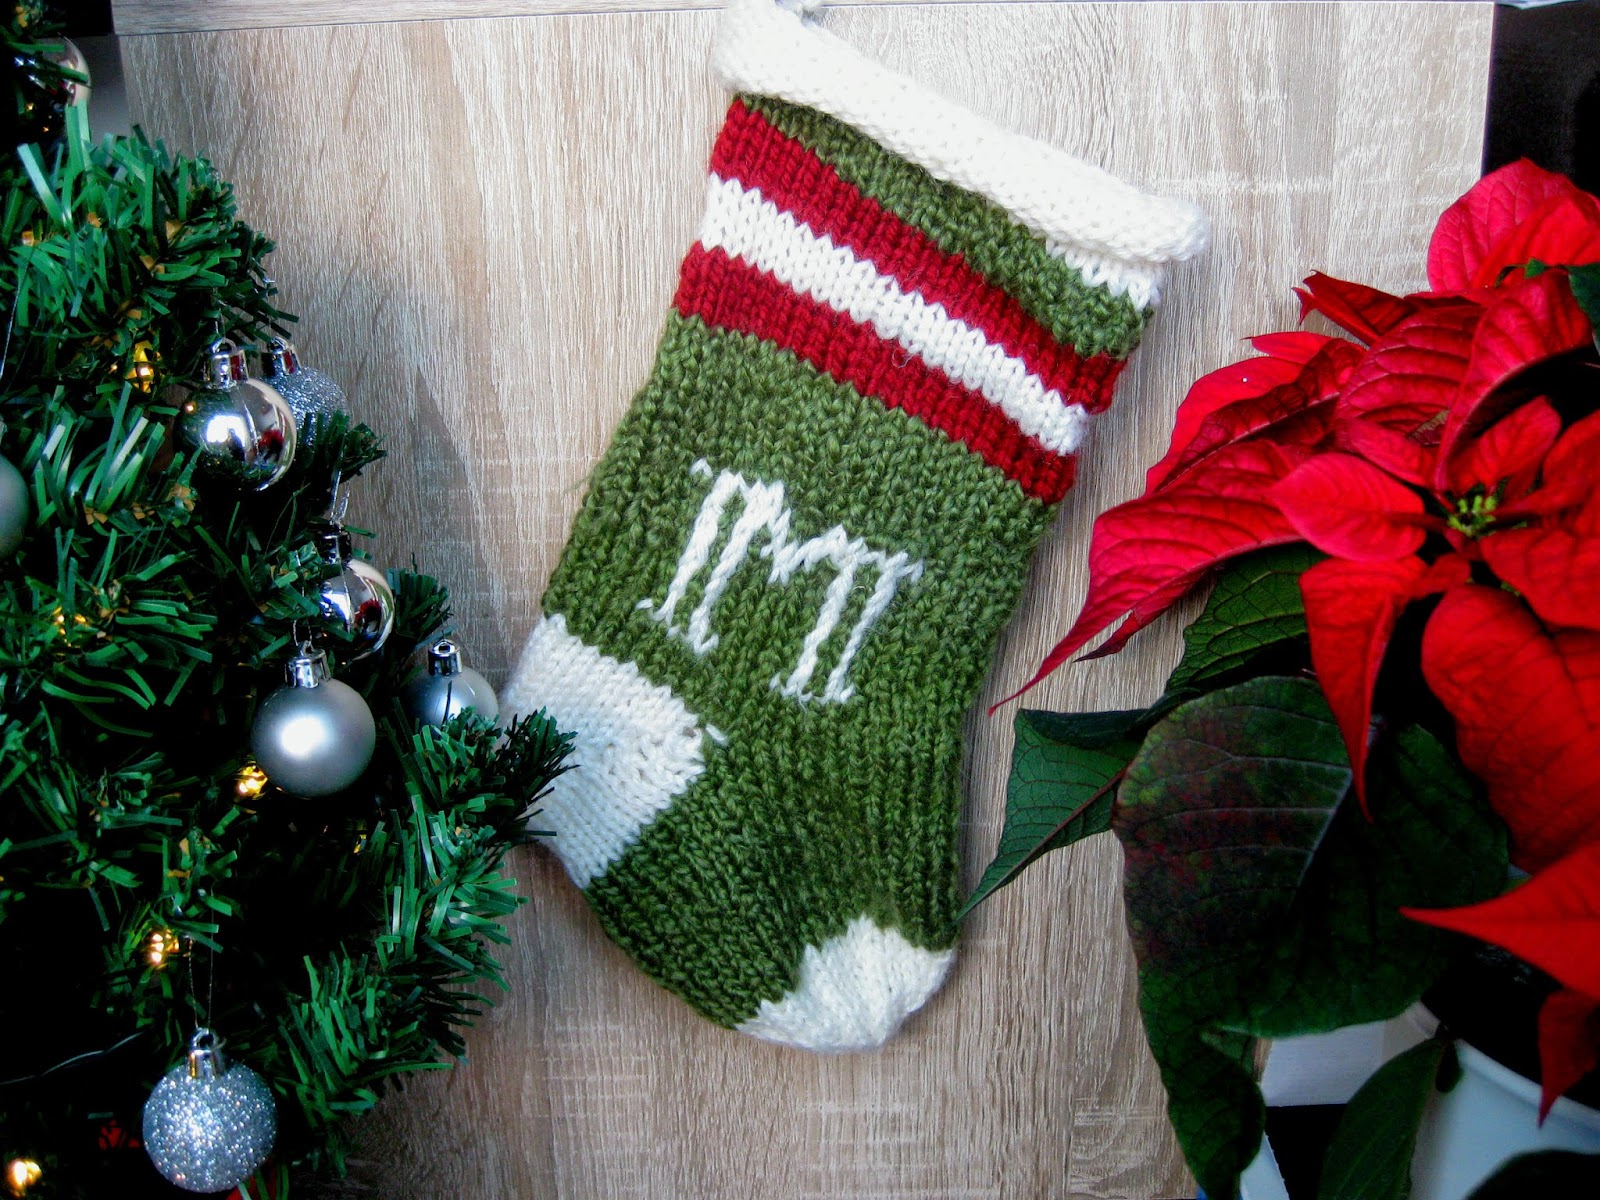 Christmas stocking that I knit for Marco